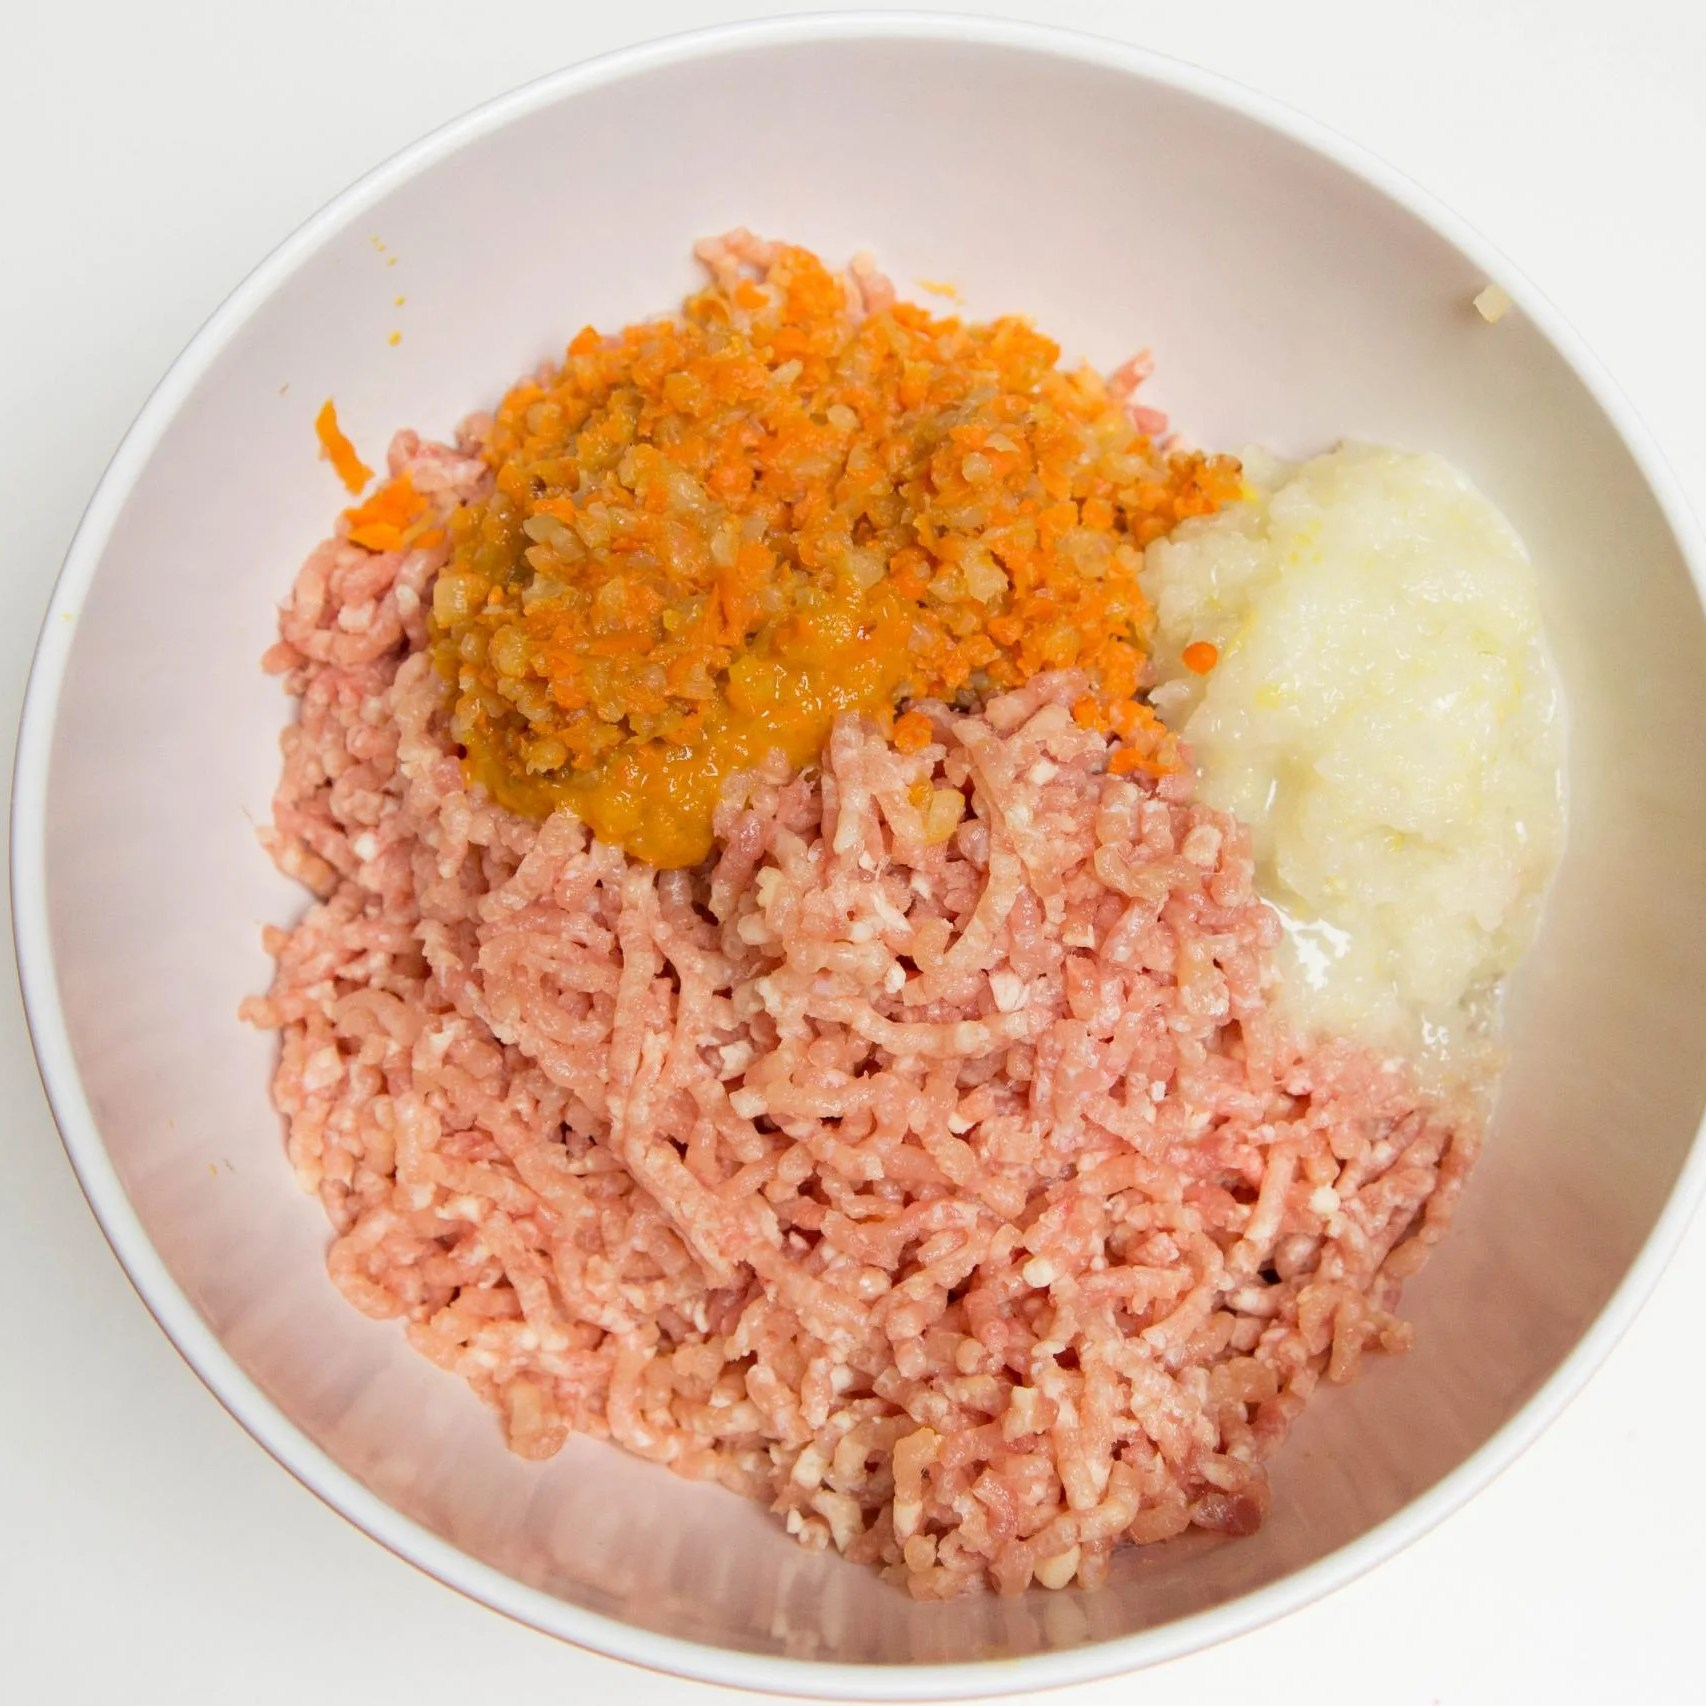 Blended and sautéed carrots and onion and ground chicken in a bowl